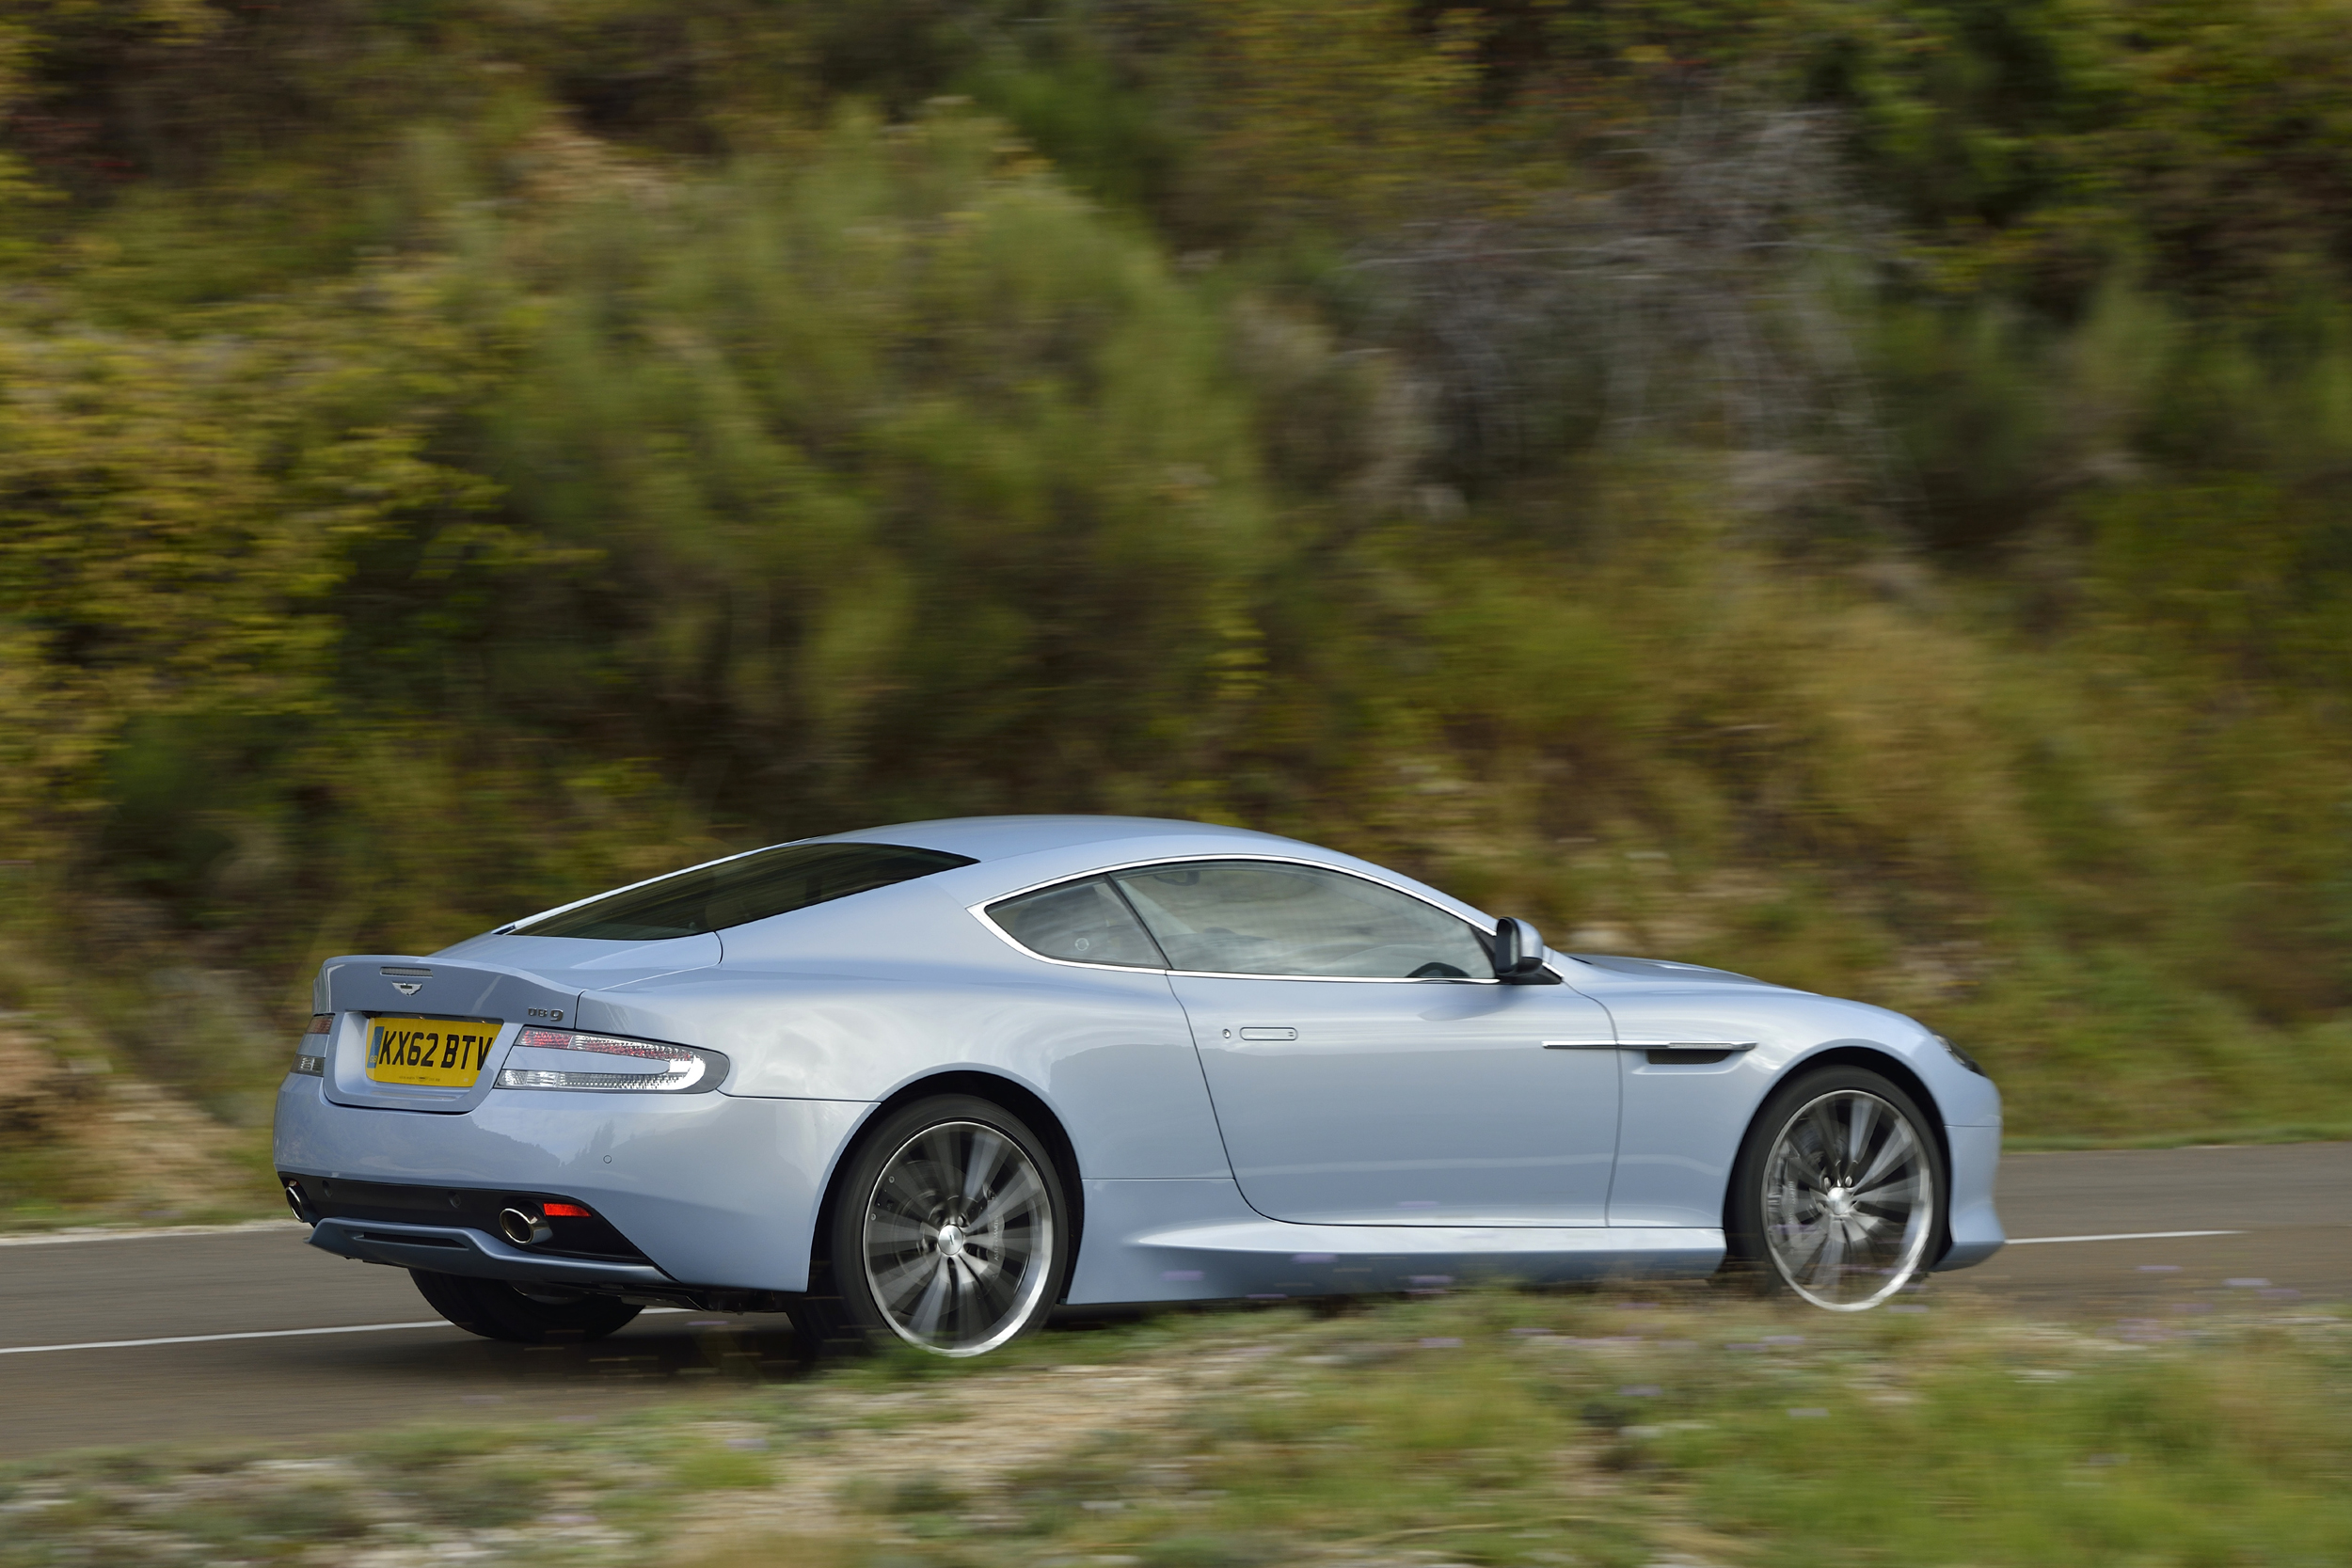 Aston Martin DB9 2016 International Price & Overview